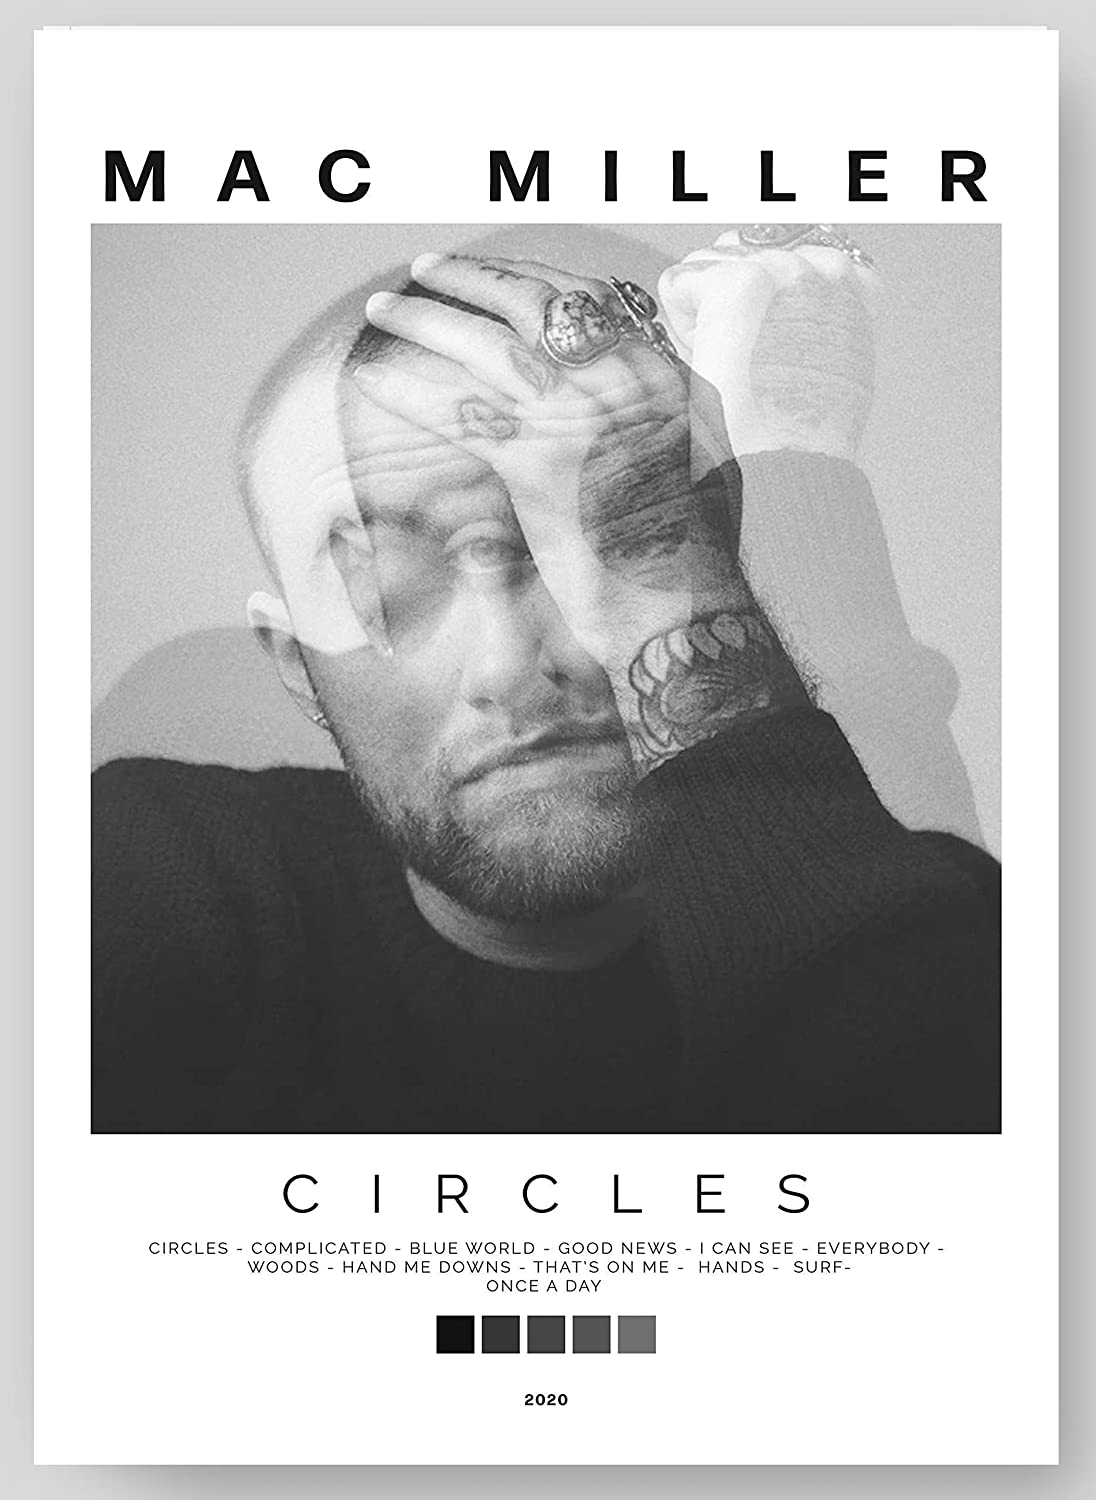 """Mac Miller - Circles Album Cover Poster Print With Track List and Color Tiles - 11"""" x 17"""" inches Ready to Frame - Wall Art"""